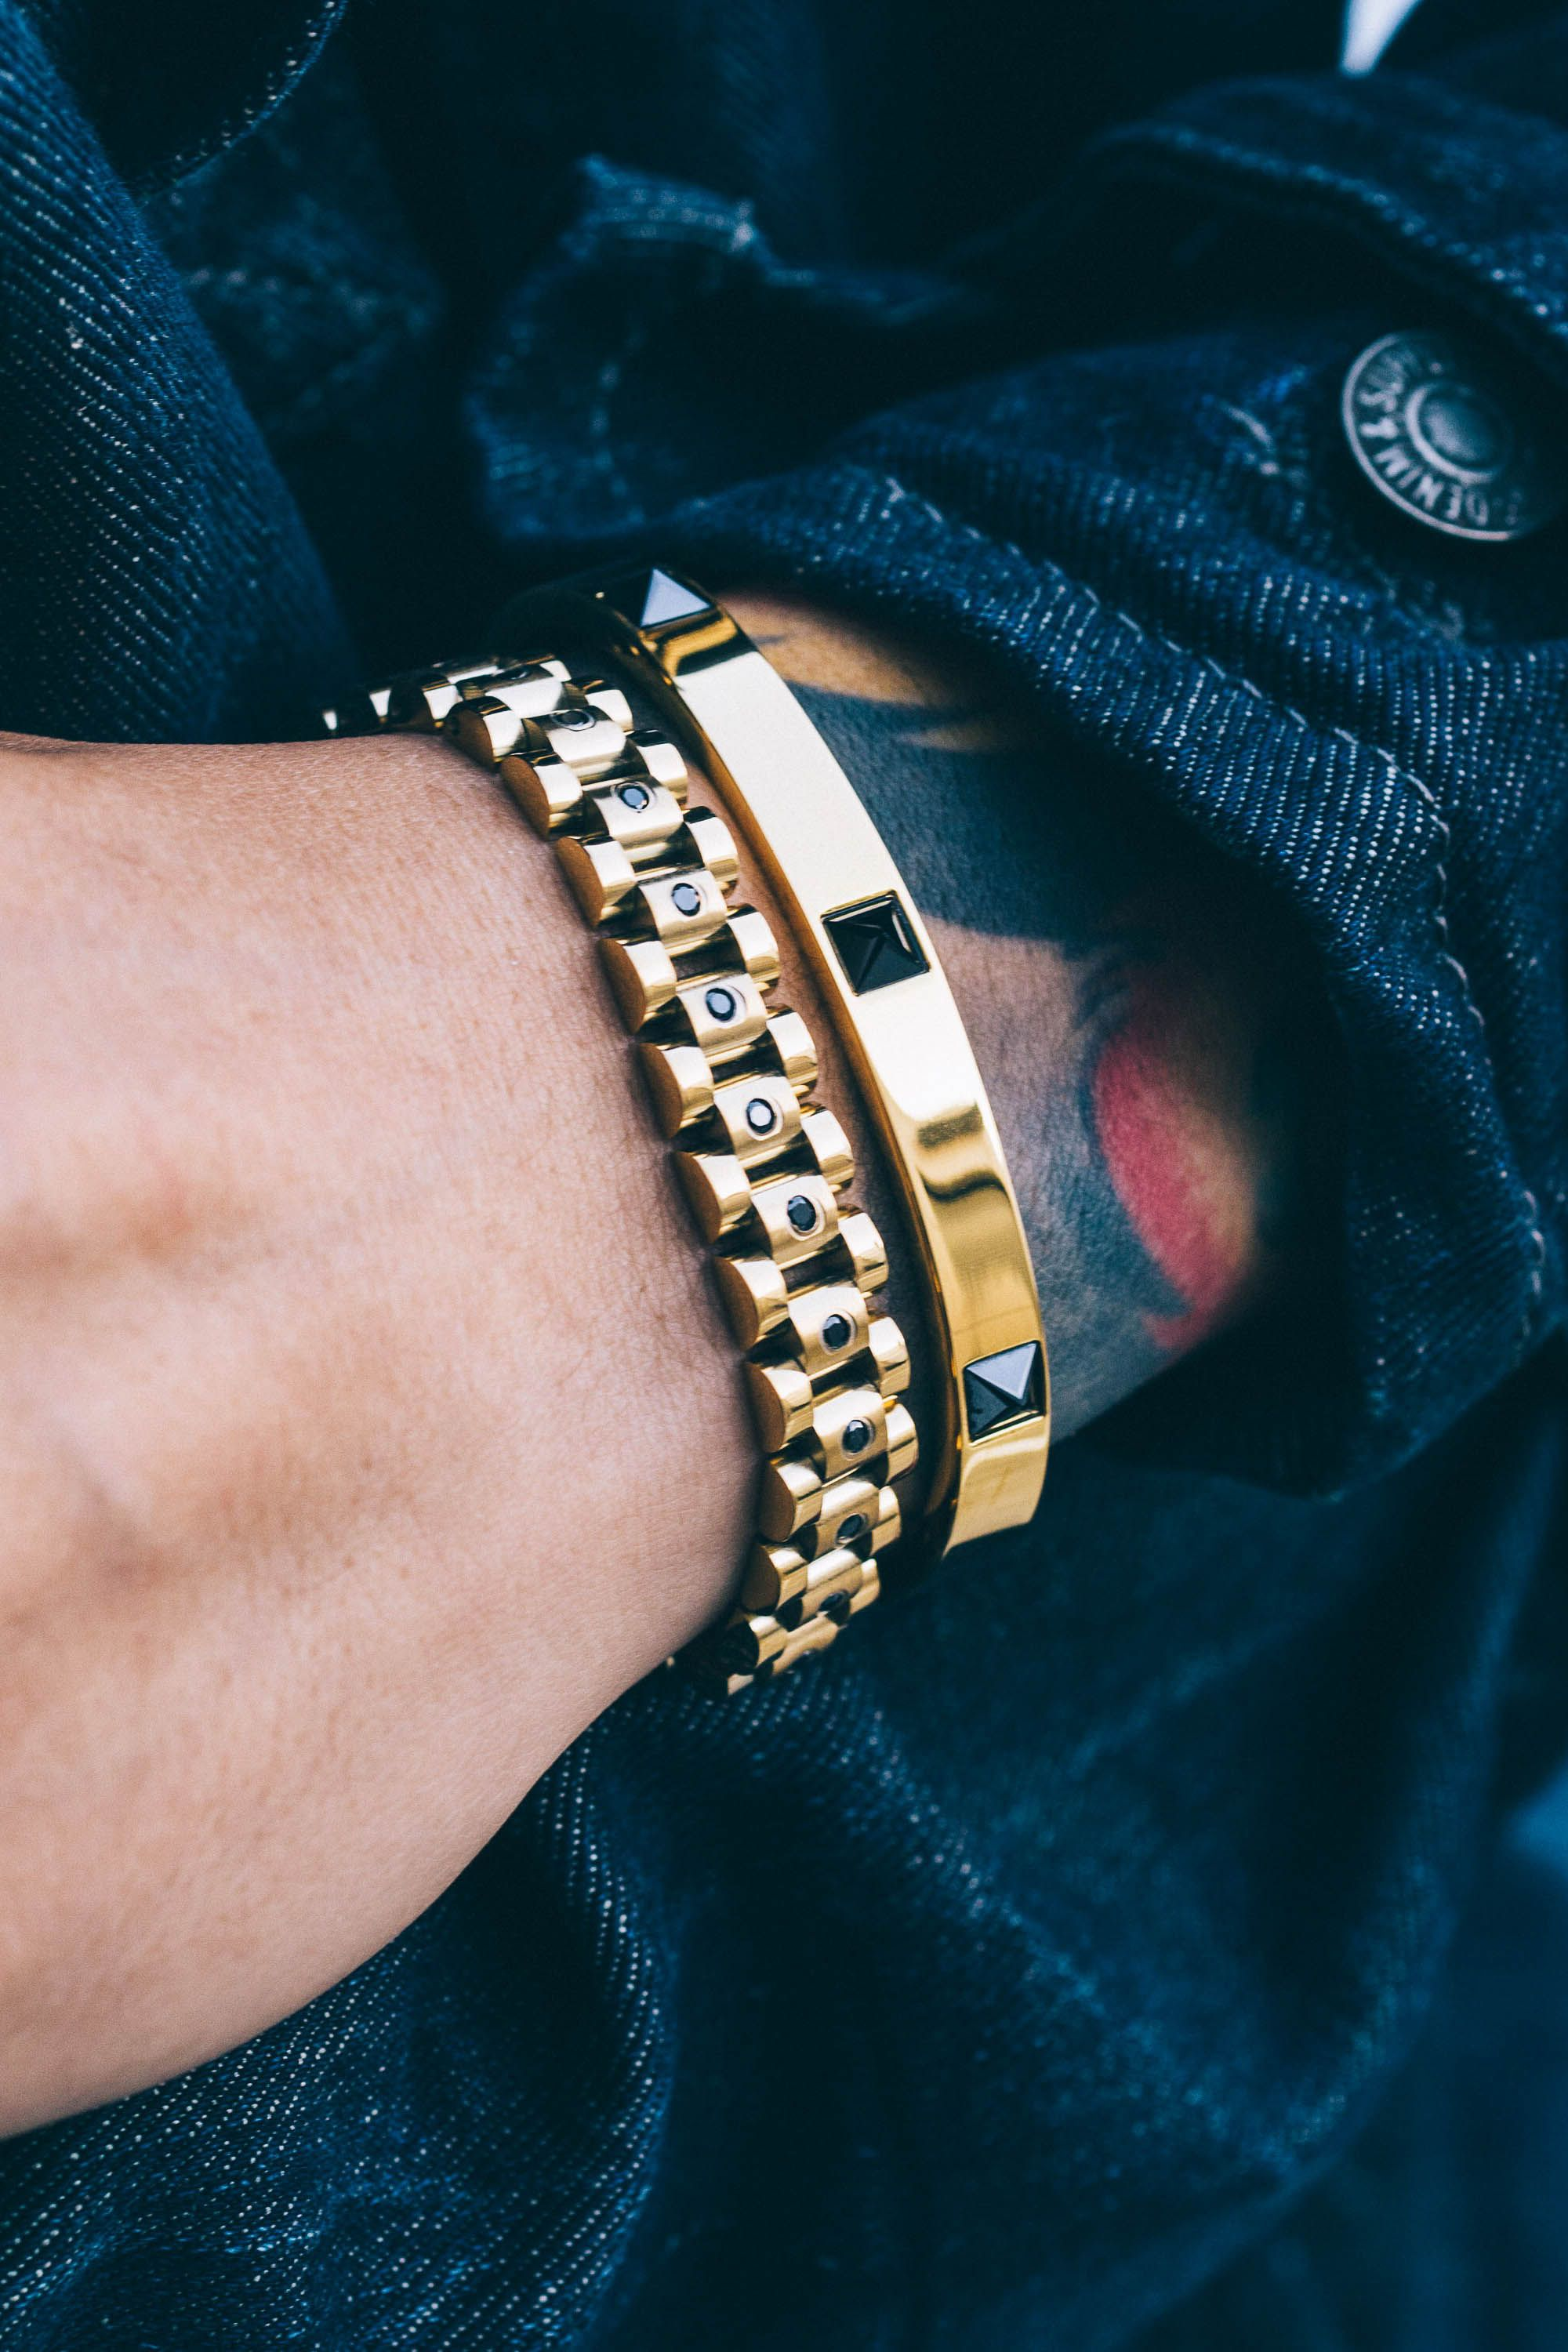 Every man needs to own these edgy bracelets by mister lắc